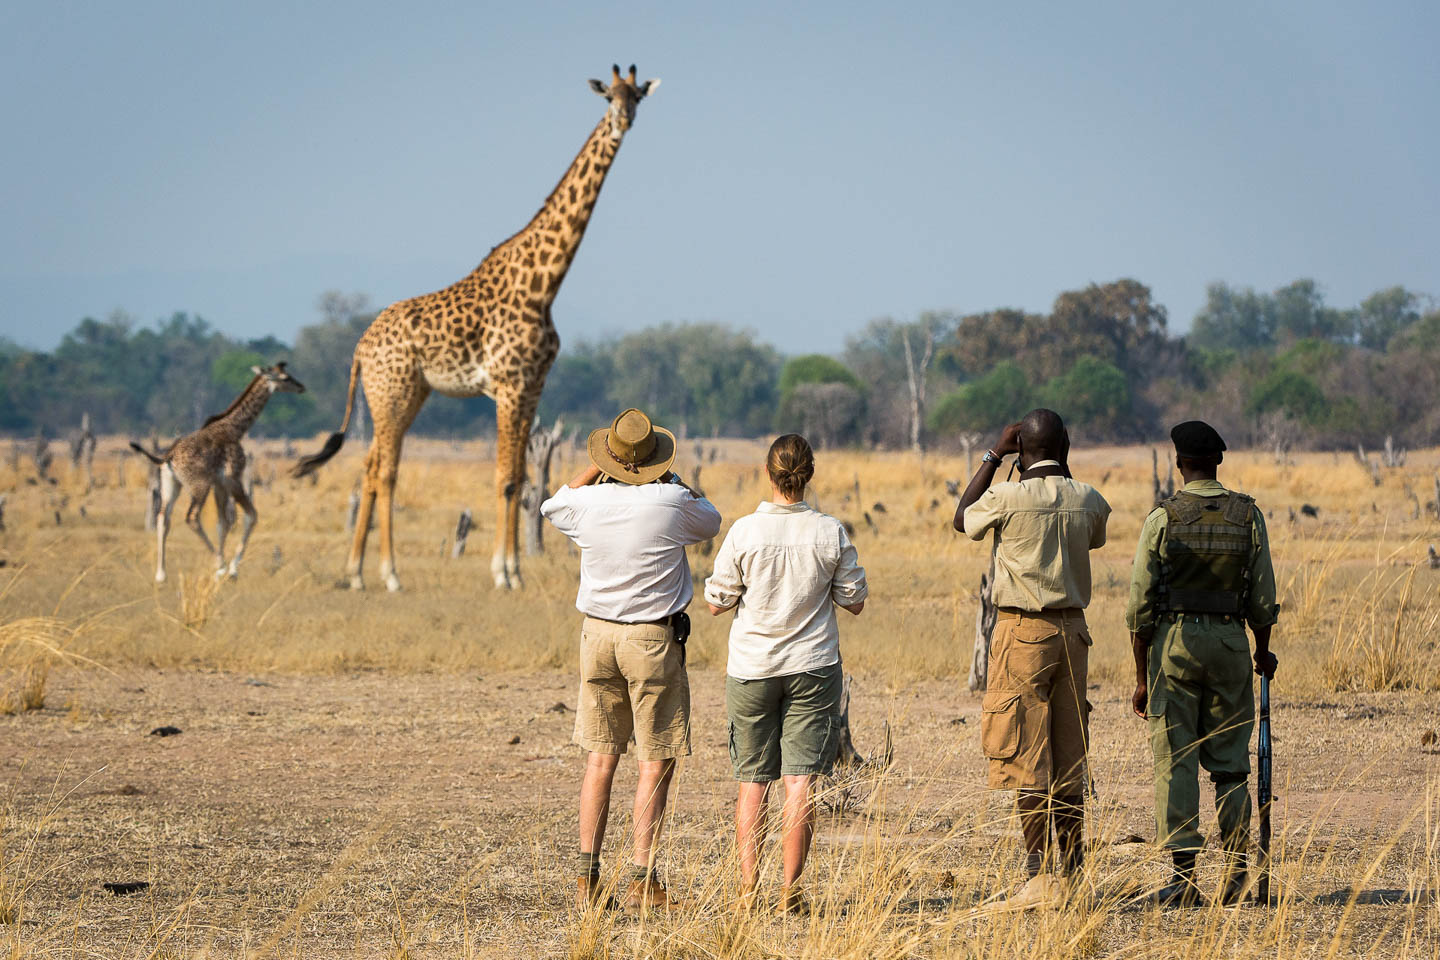 zambia travel guide africa safari destinations